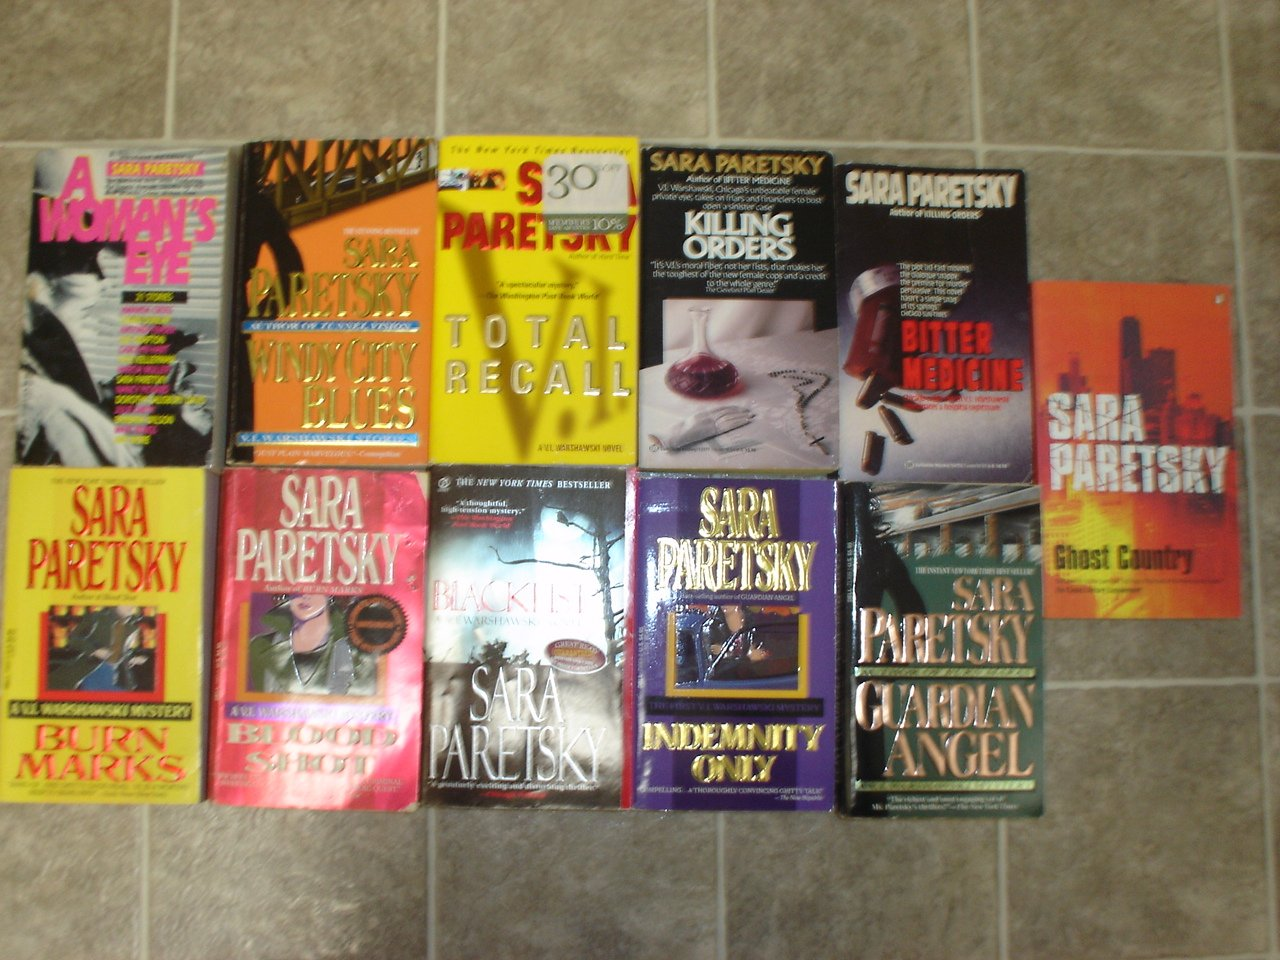 Sara Paretsky lot of 11 pb mystery novels books V.I. Warshawski